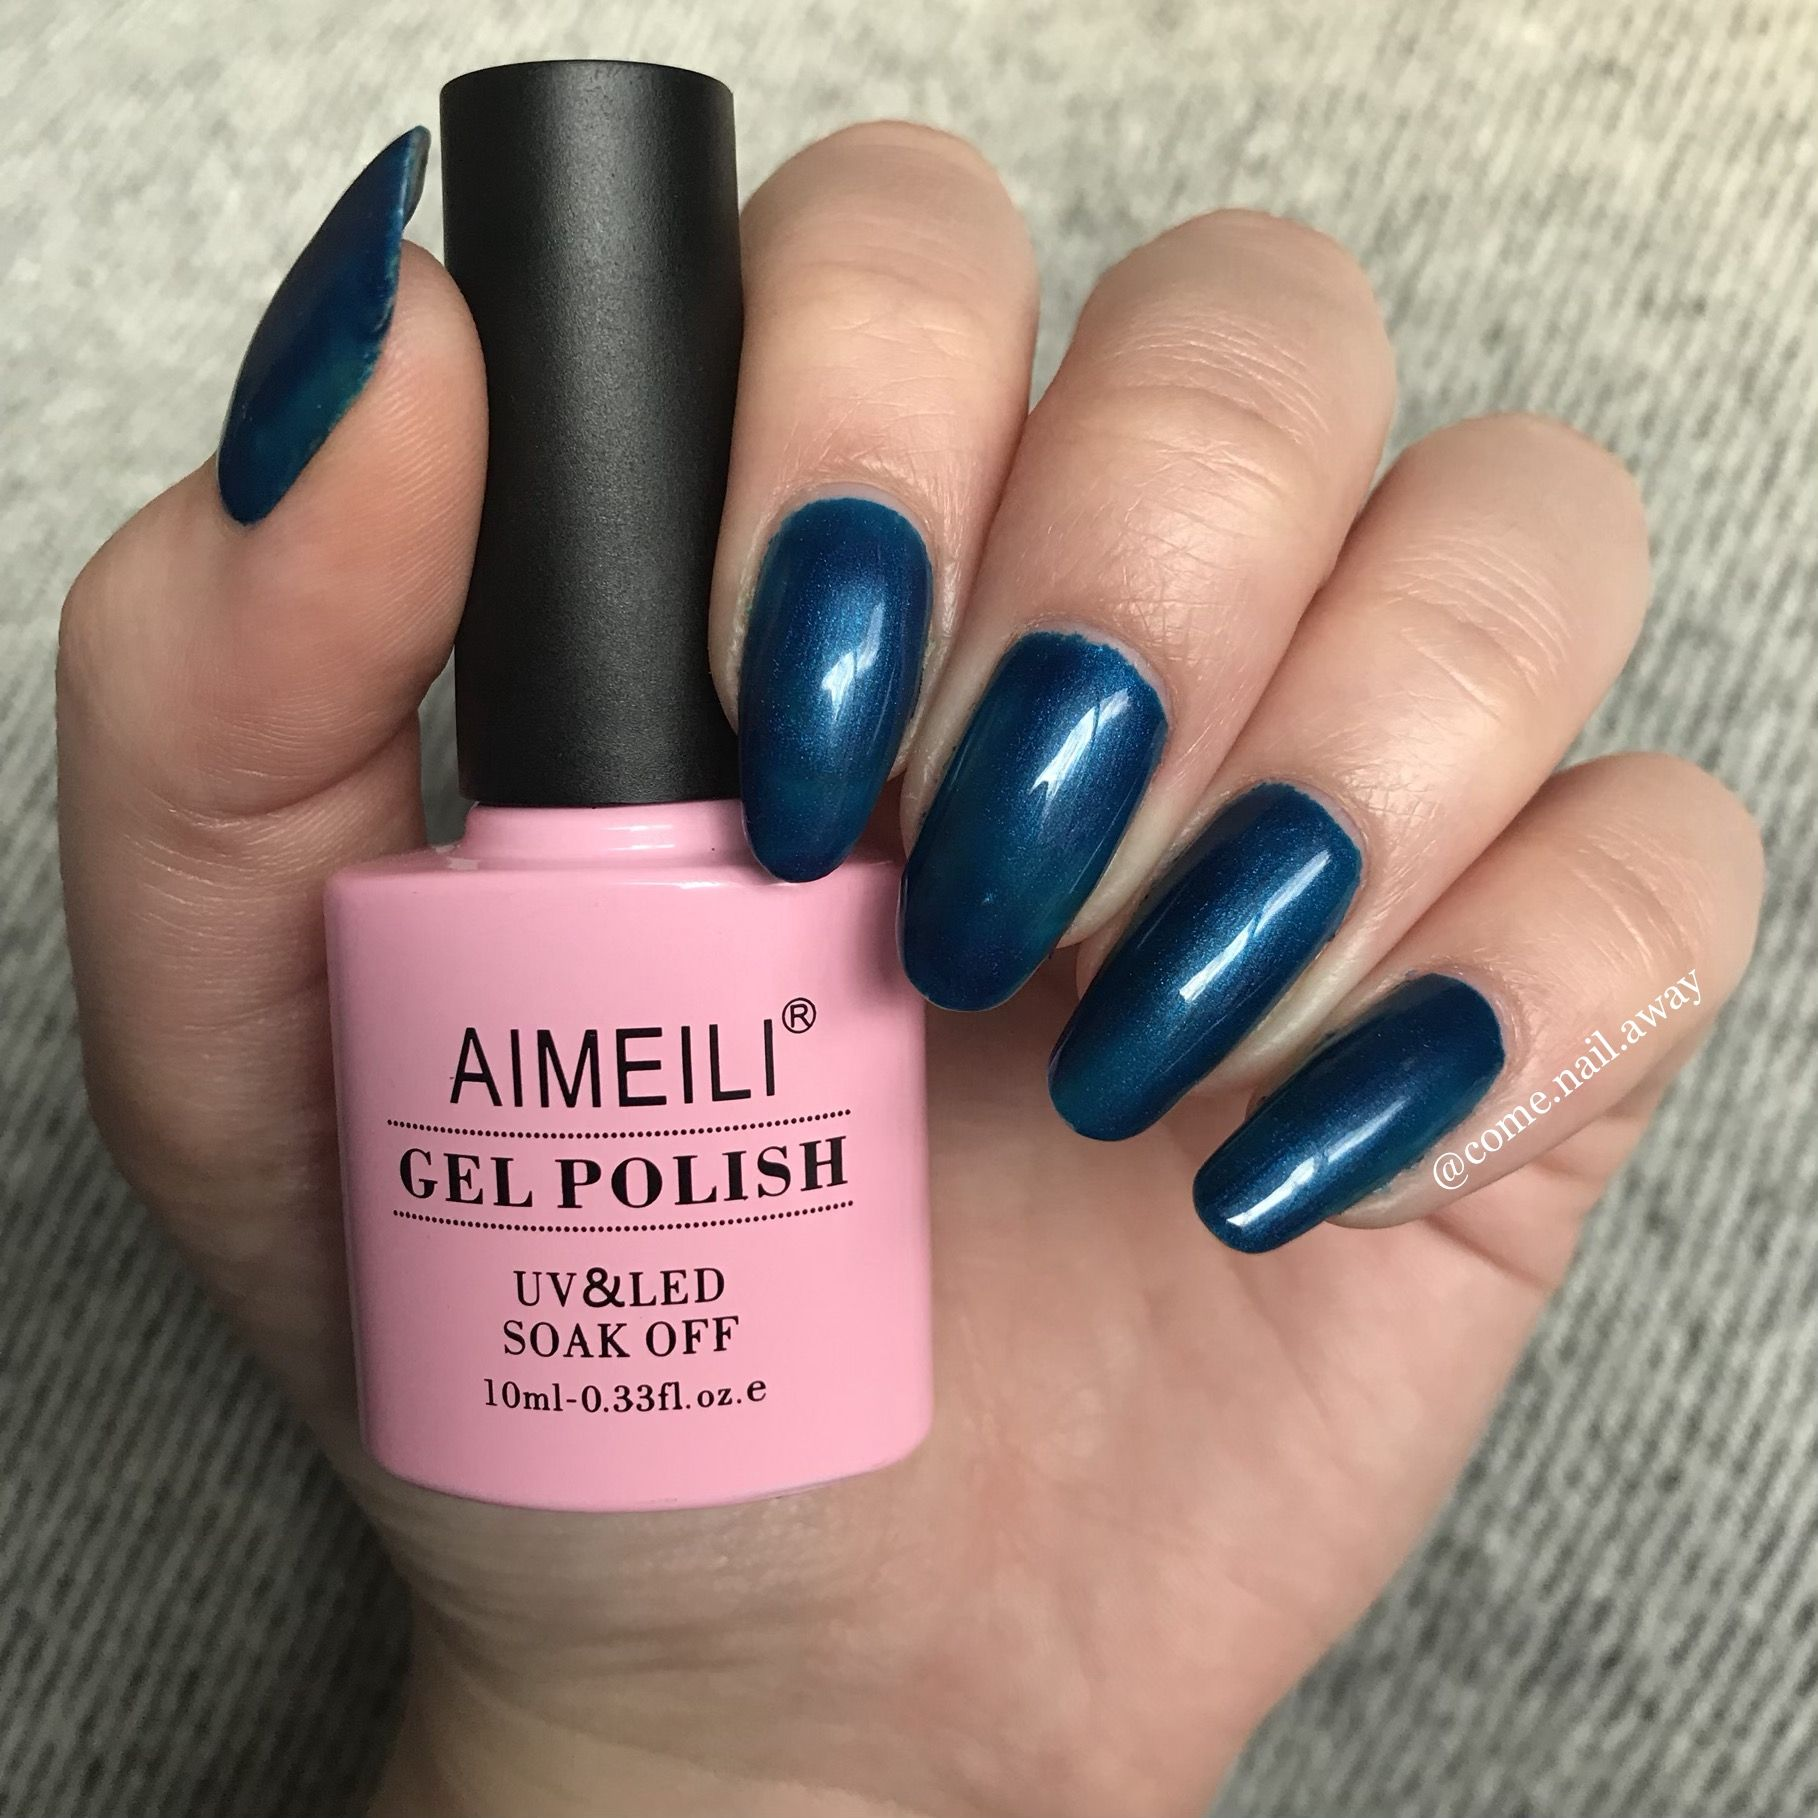 Nail Art Designs Deserve To Try In 2019 Be Inspired By All These Gorgeous Designs From Our Customers You Will Defin Gel Manicure Gel Nail Designs Nail Polish